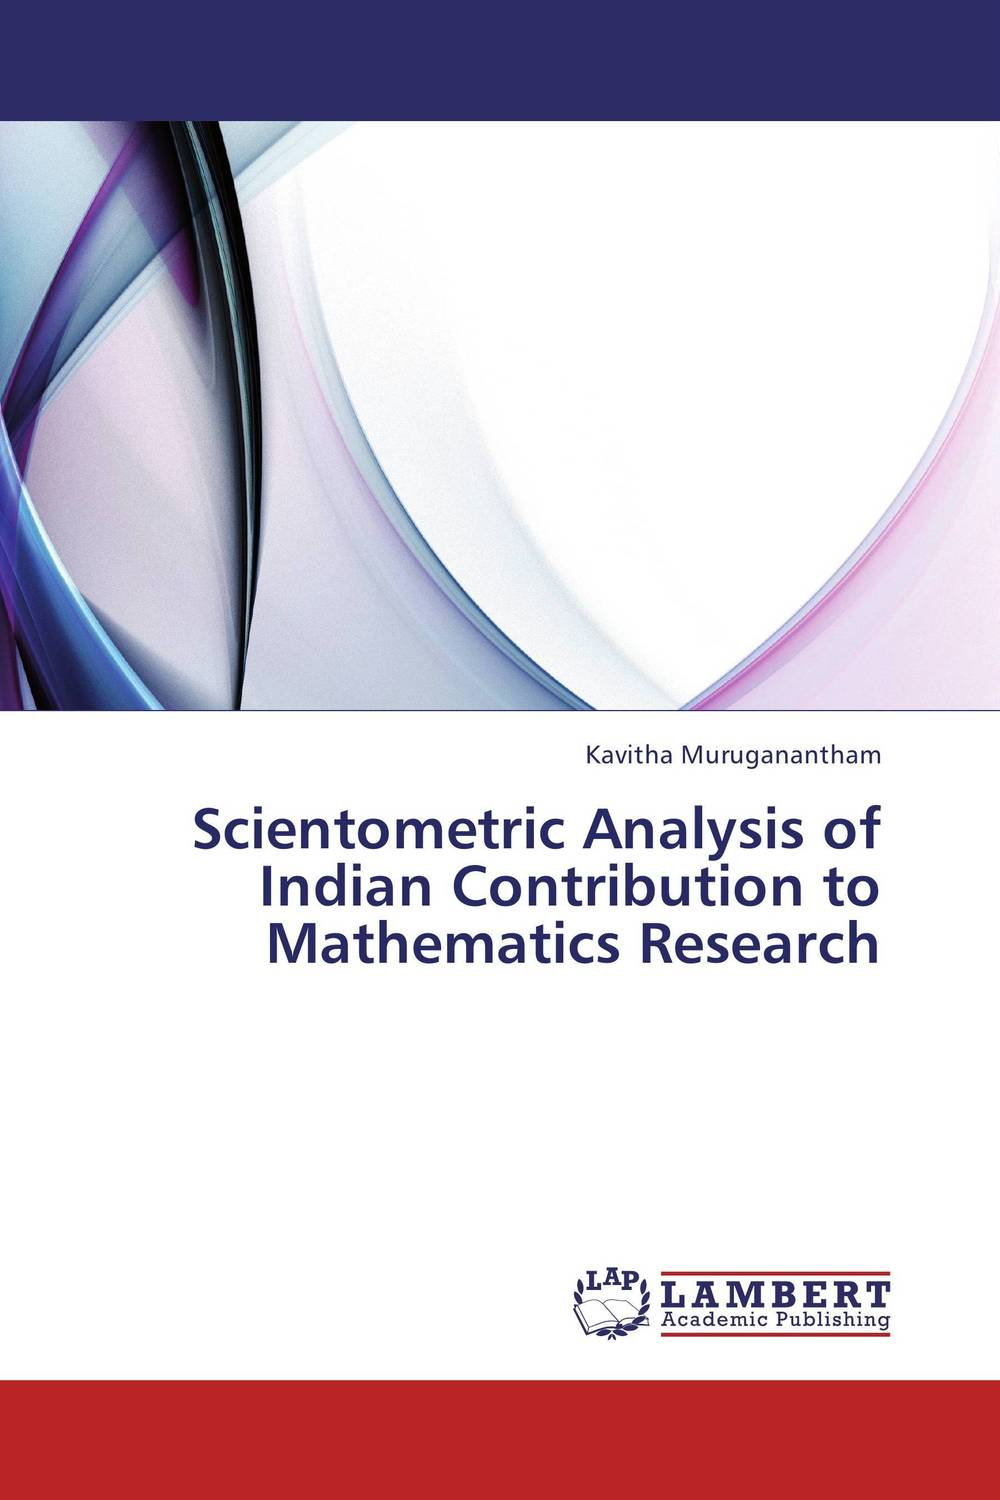 Scientometric Analysis of Indian Contribution to Mathematics Research the intricate nature of mathematics